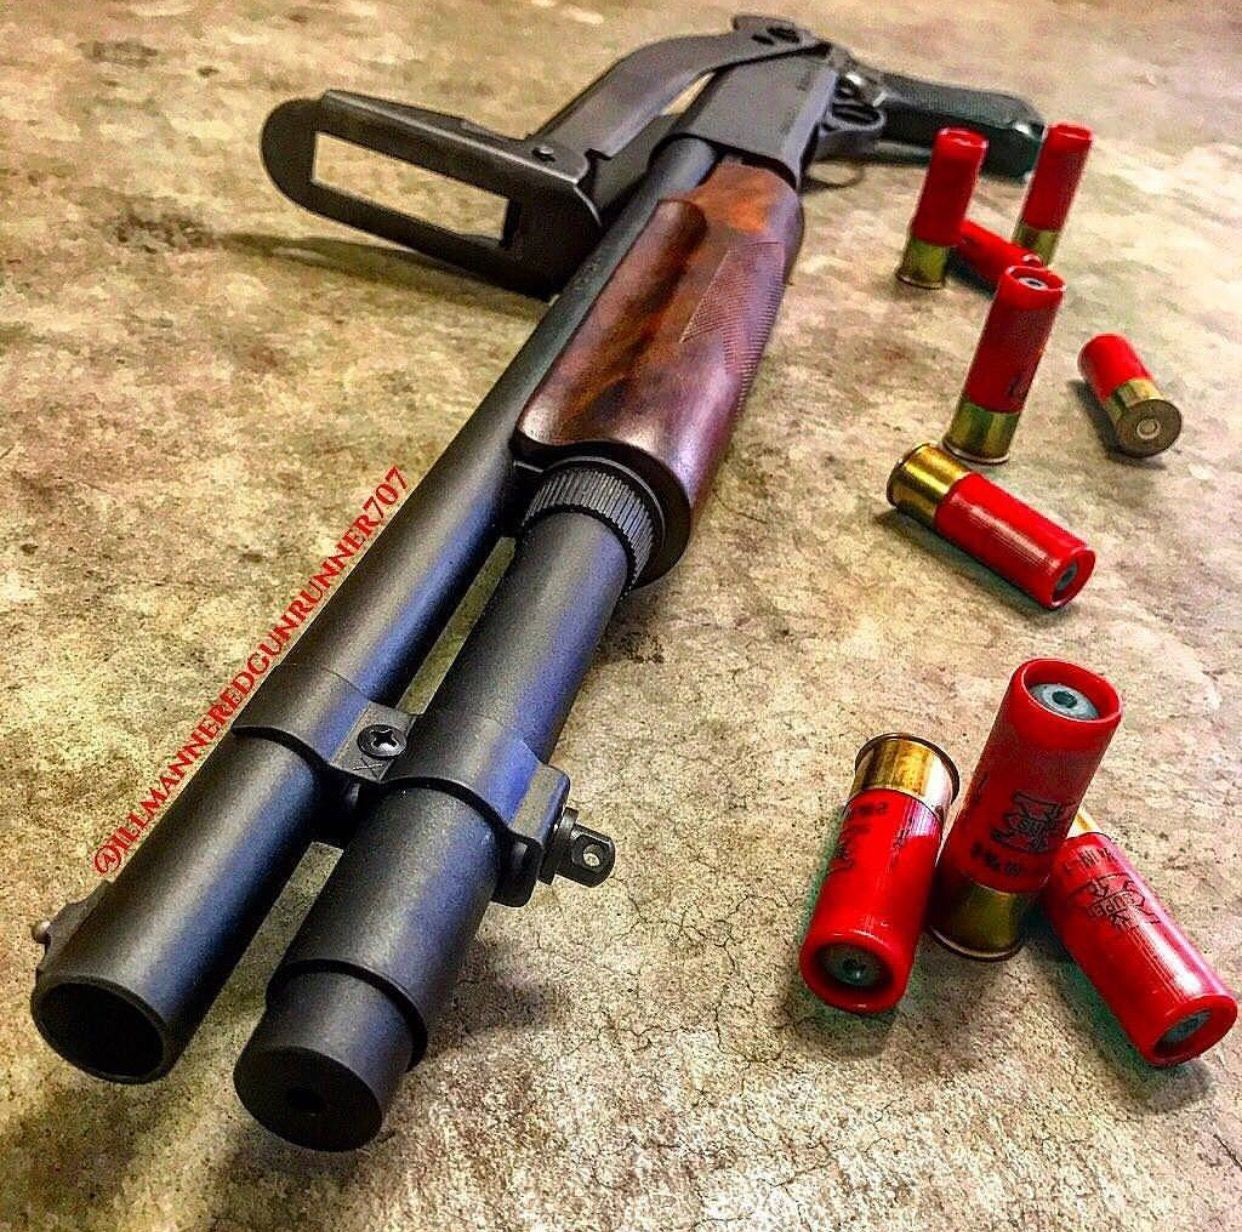 BY ACE CASE 10 SHELLS MOSSBERG 500 TACTICAL PUMP SHOTGUN AMMO SLING USA MADE